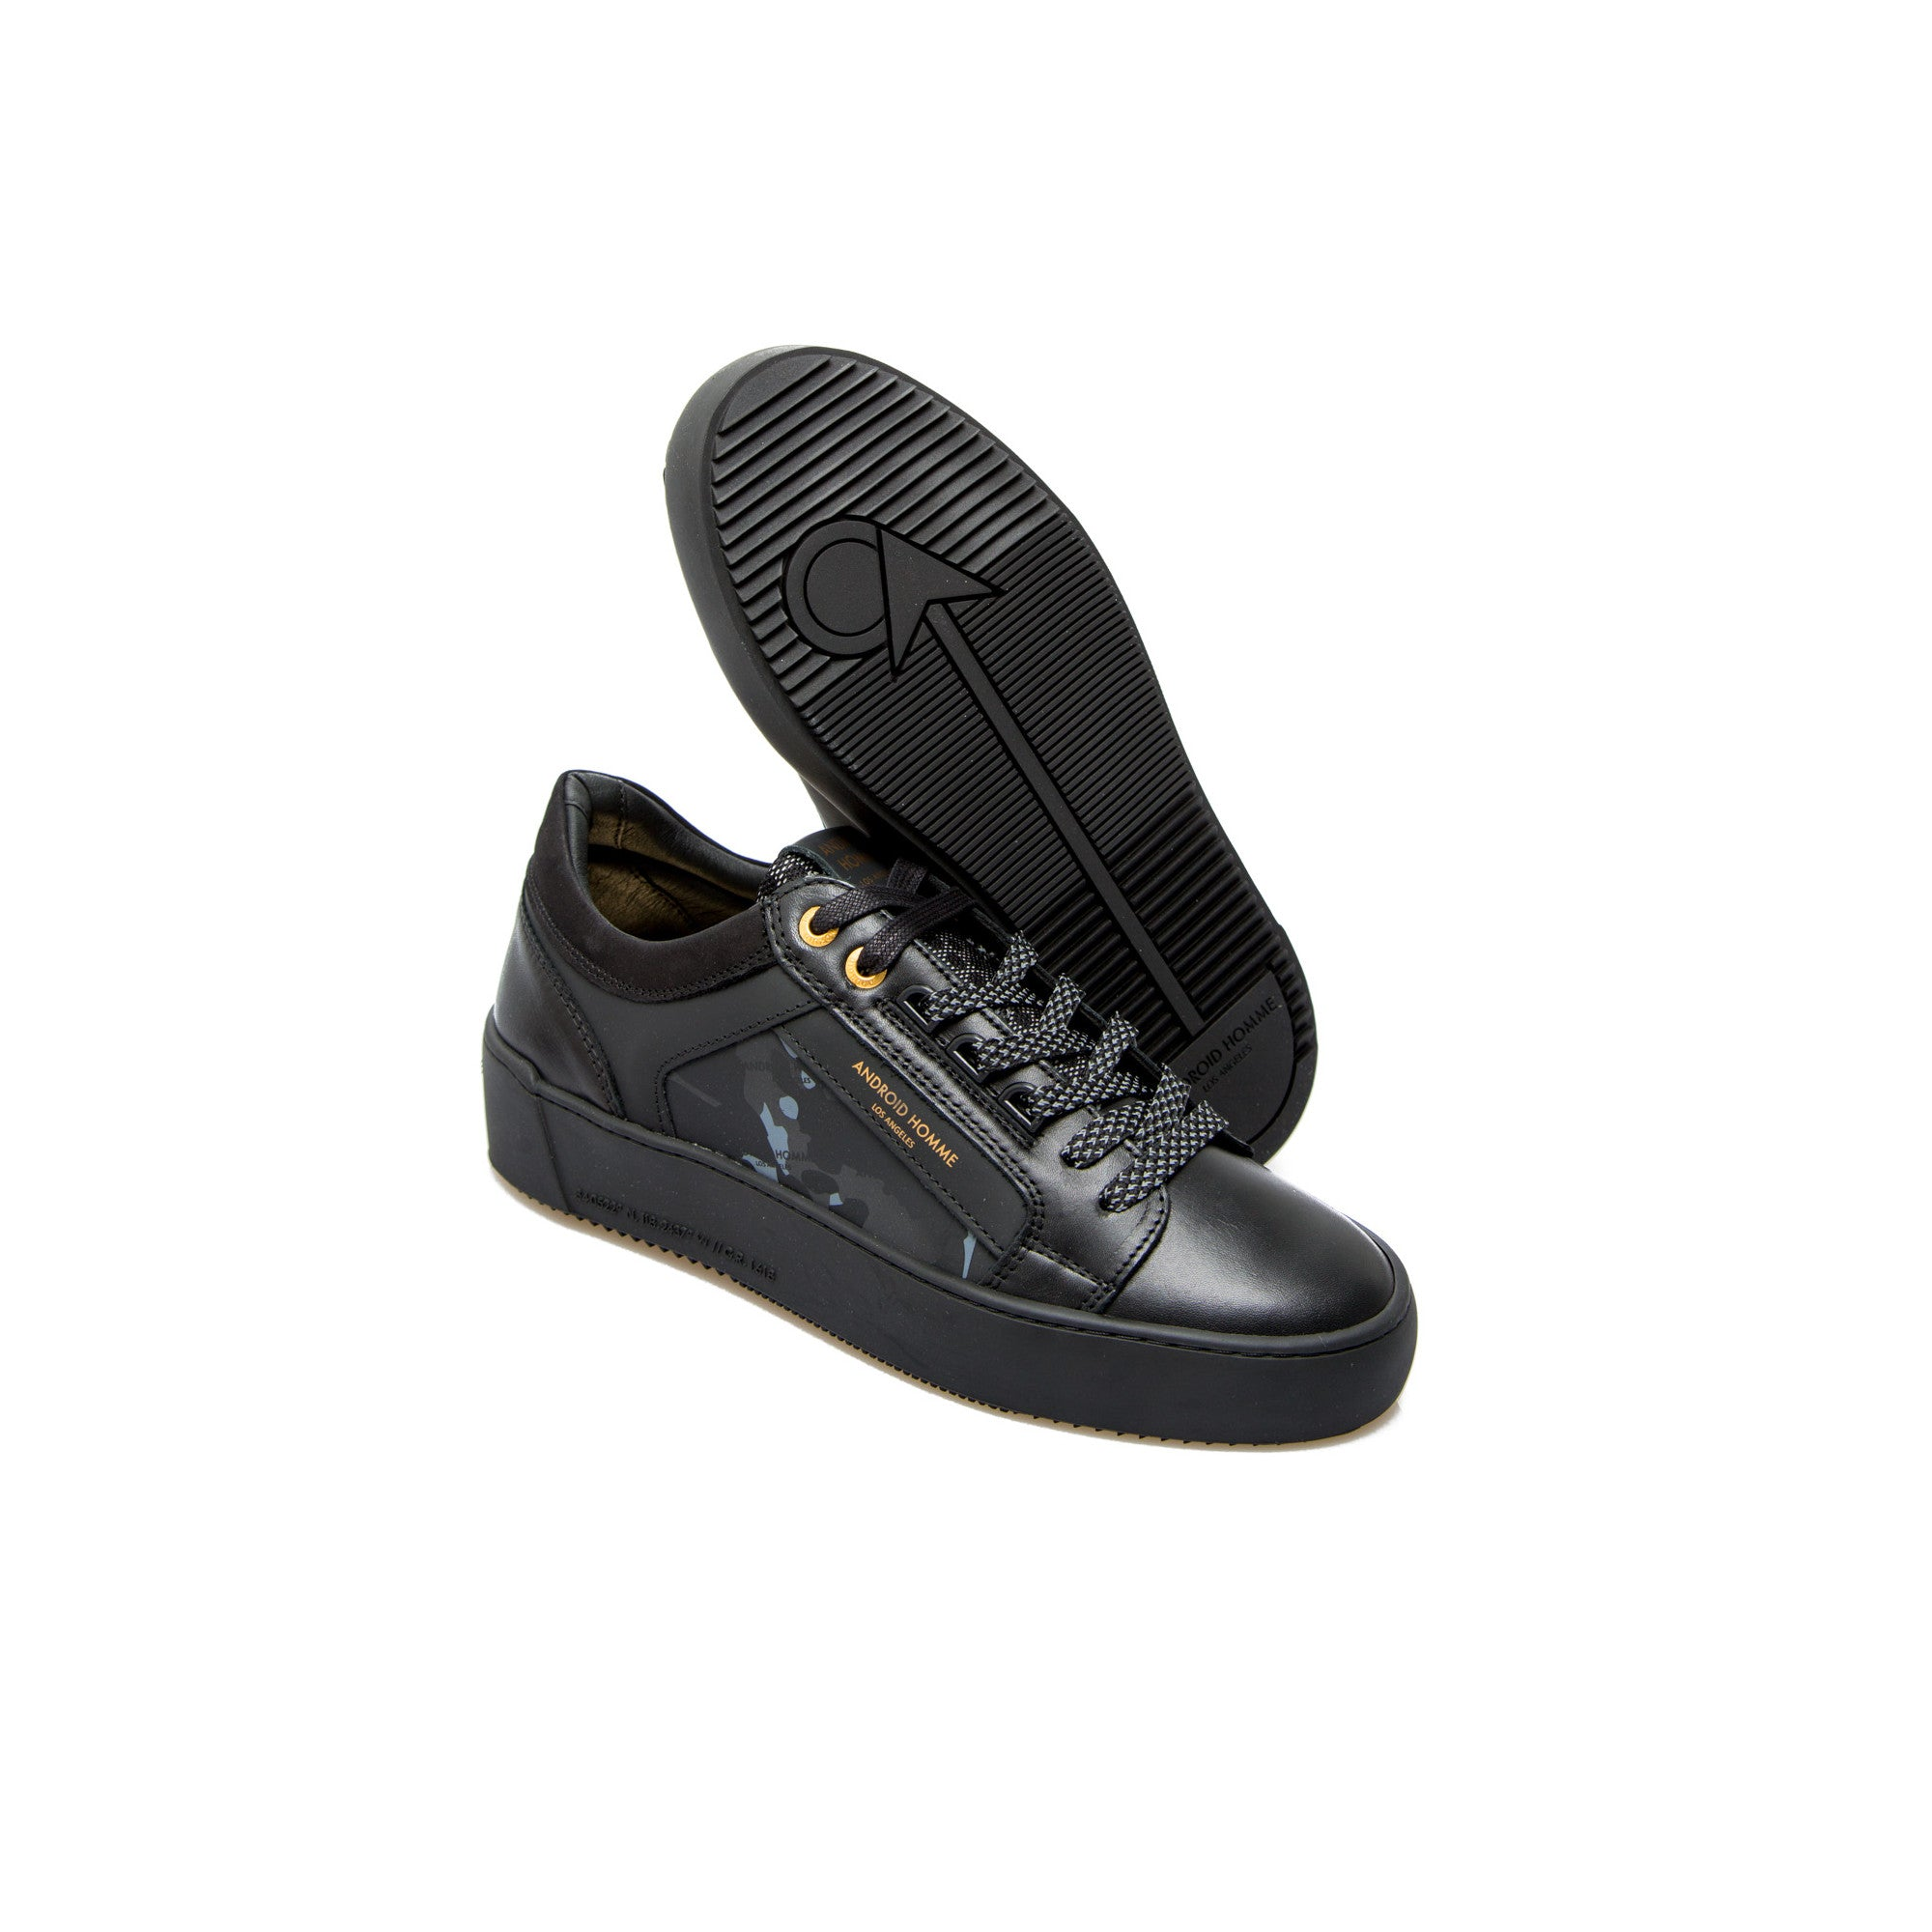 Android Homme Venice Reflexivo Camo Black Sneakers